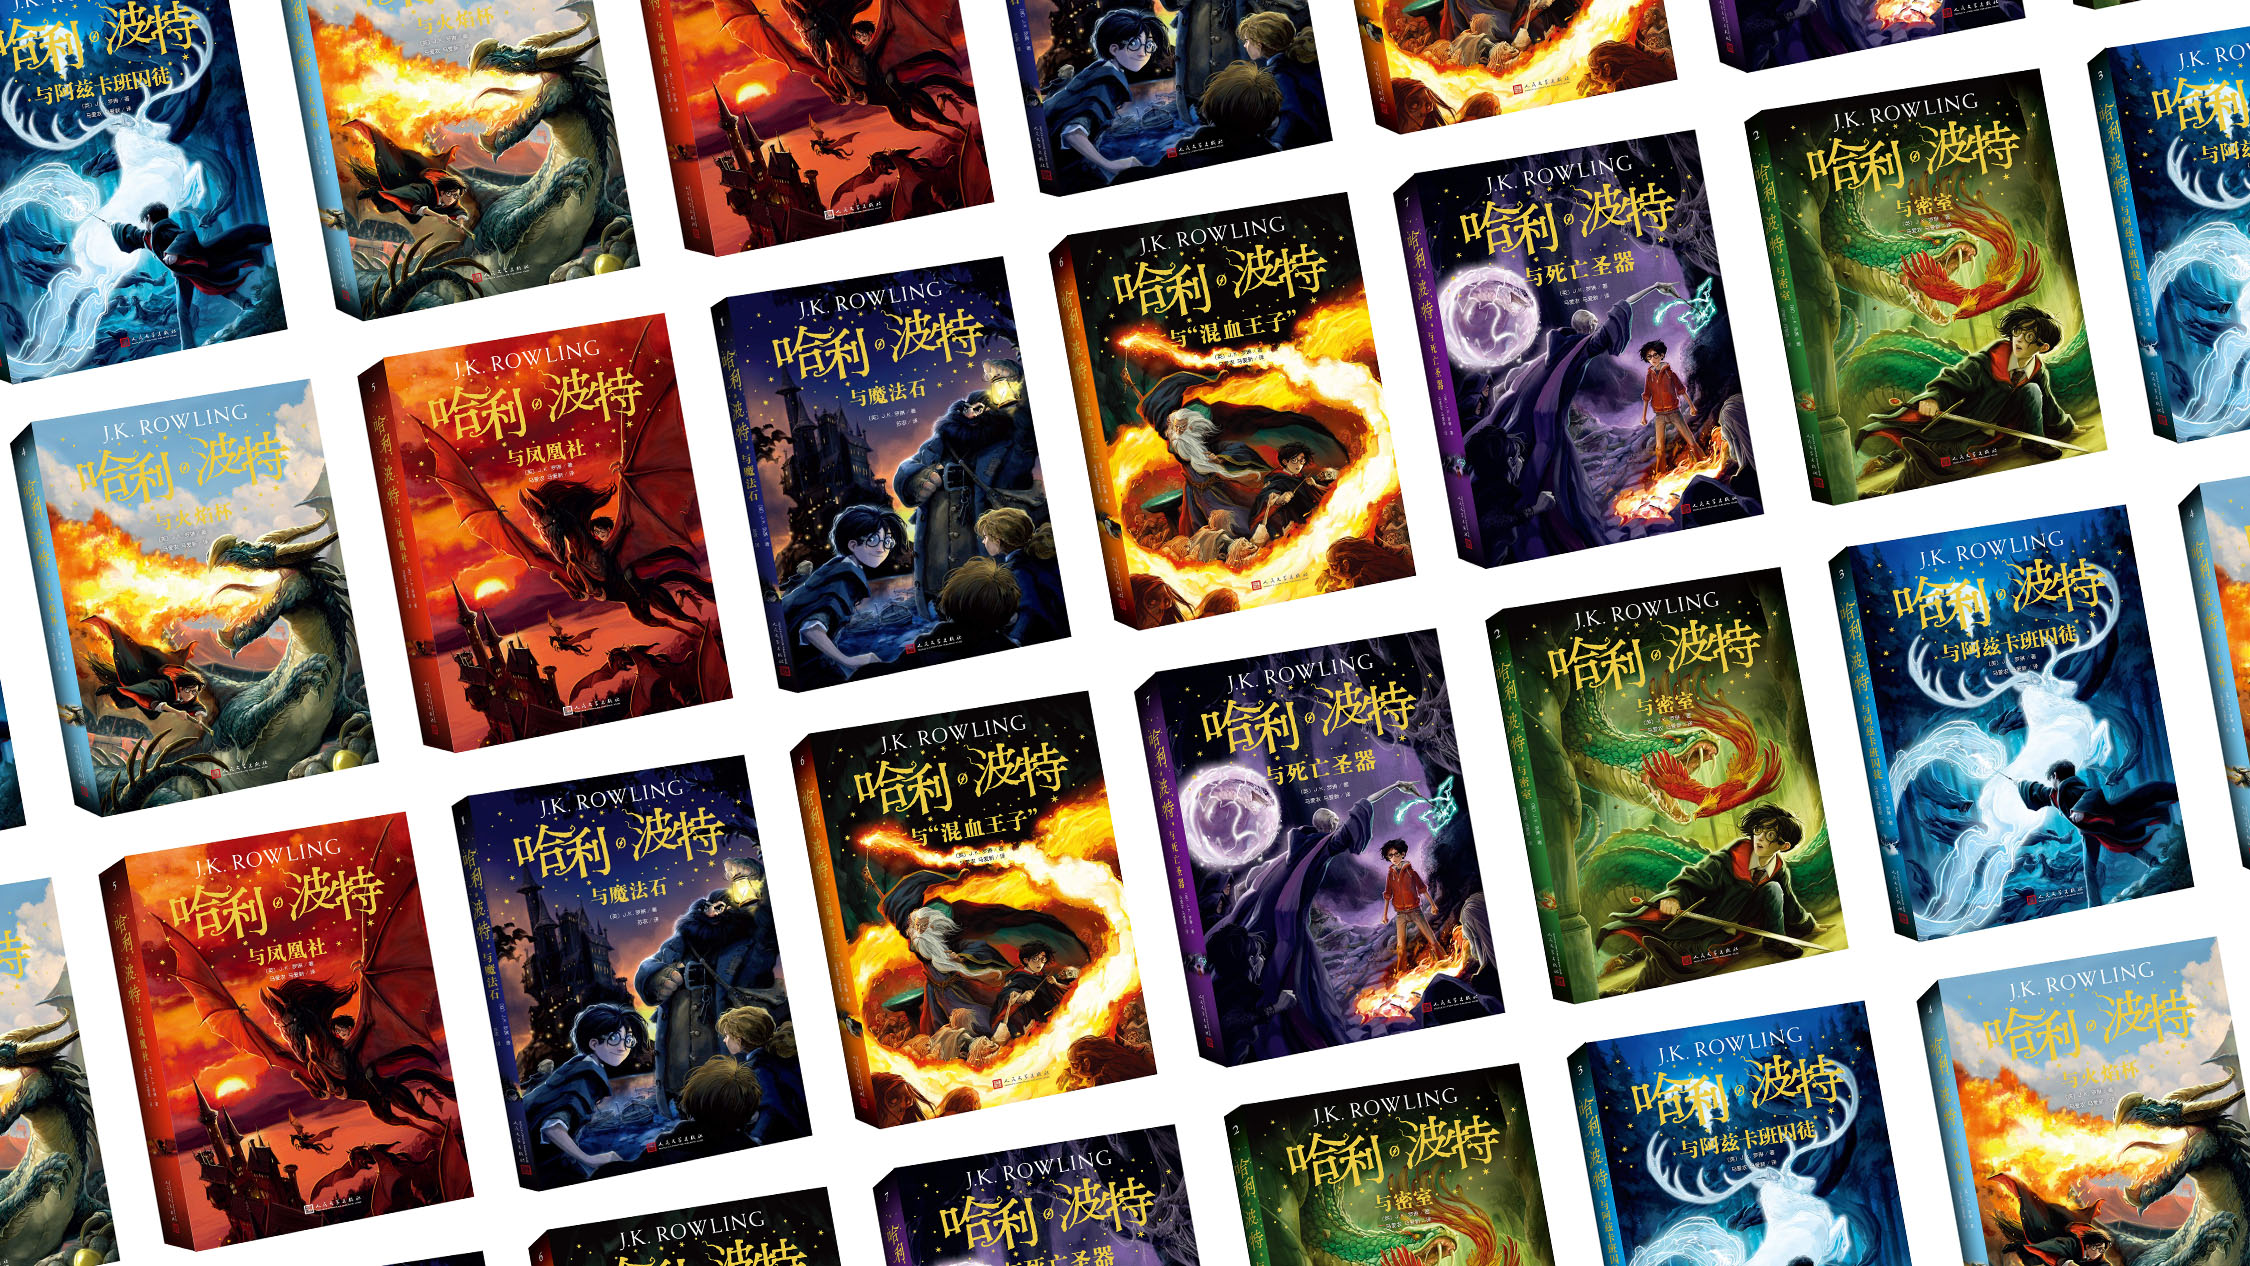 6 things you might not know about the Chinese editions of Harry Potter